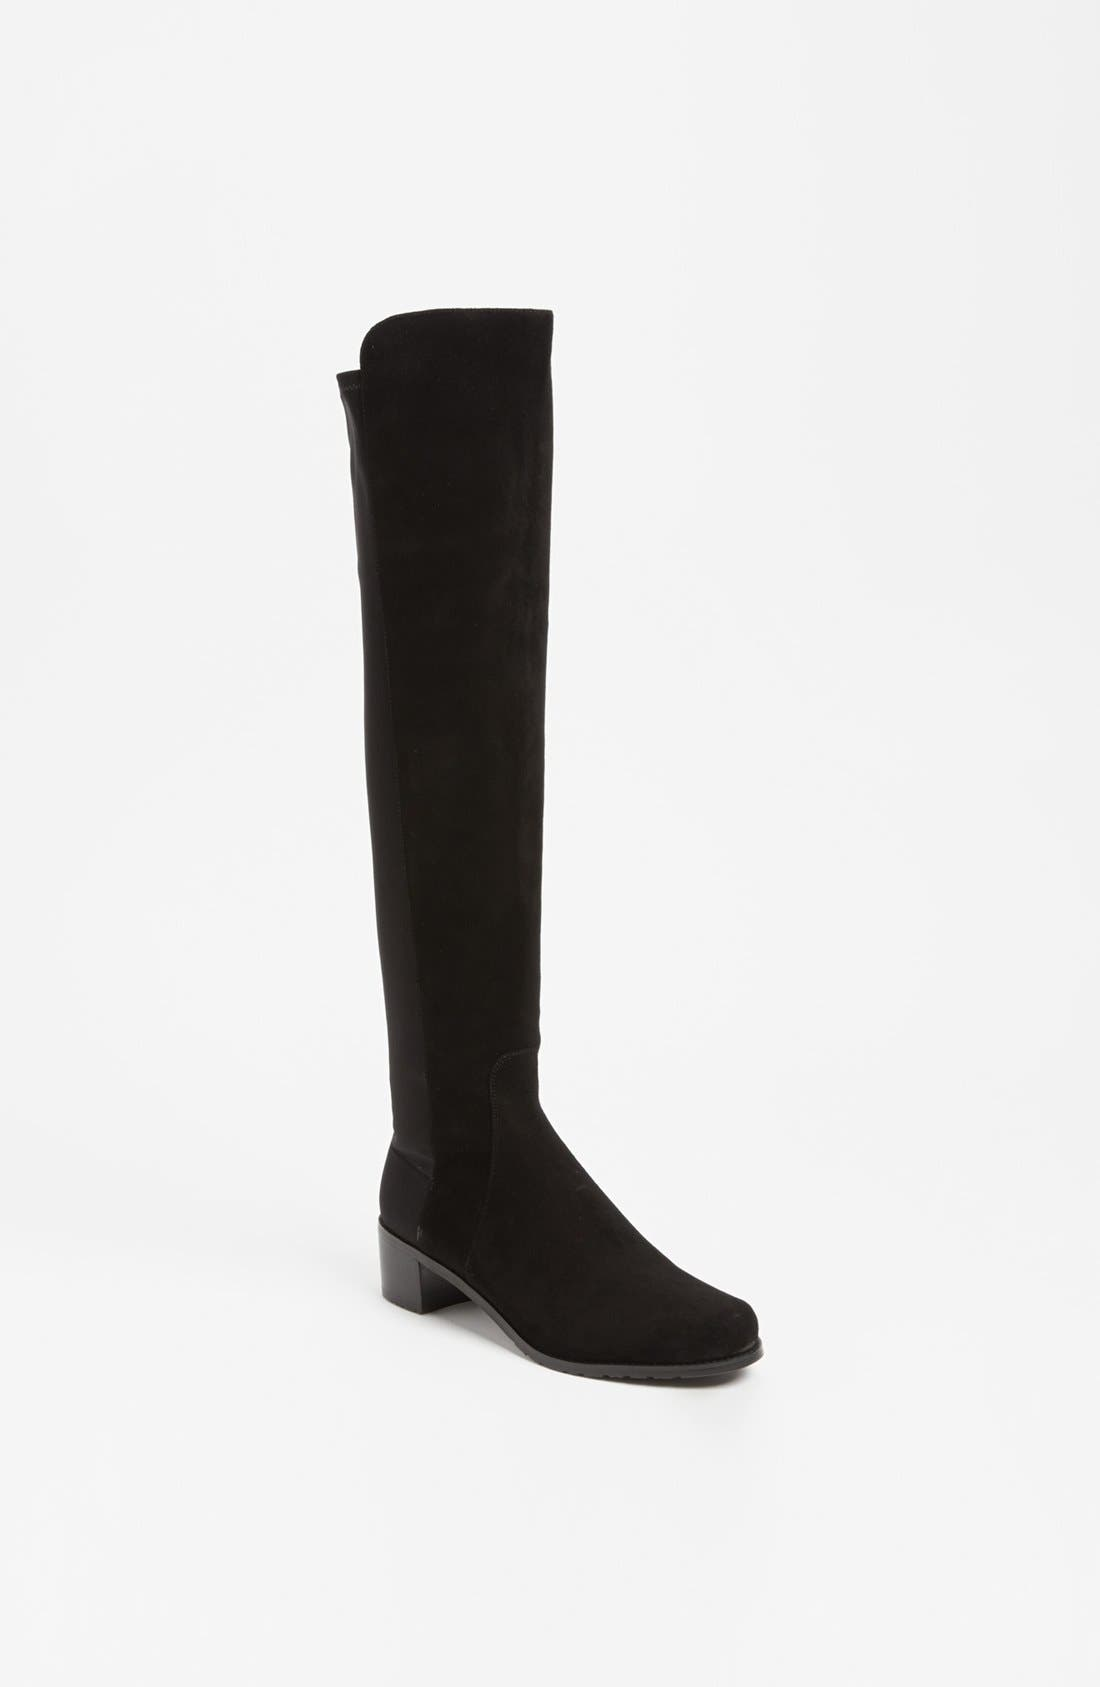 STUART WEITZMAN Reserve Over the Knee Boot